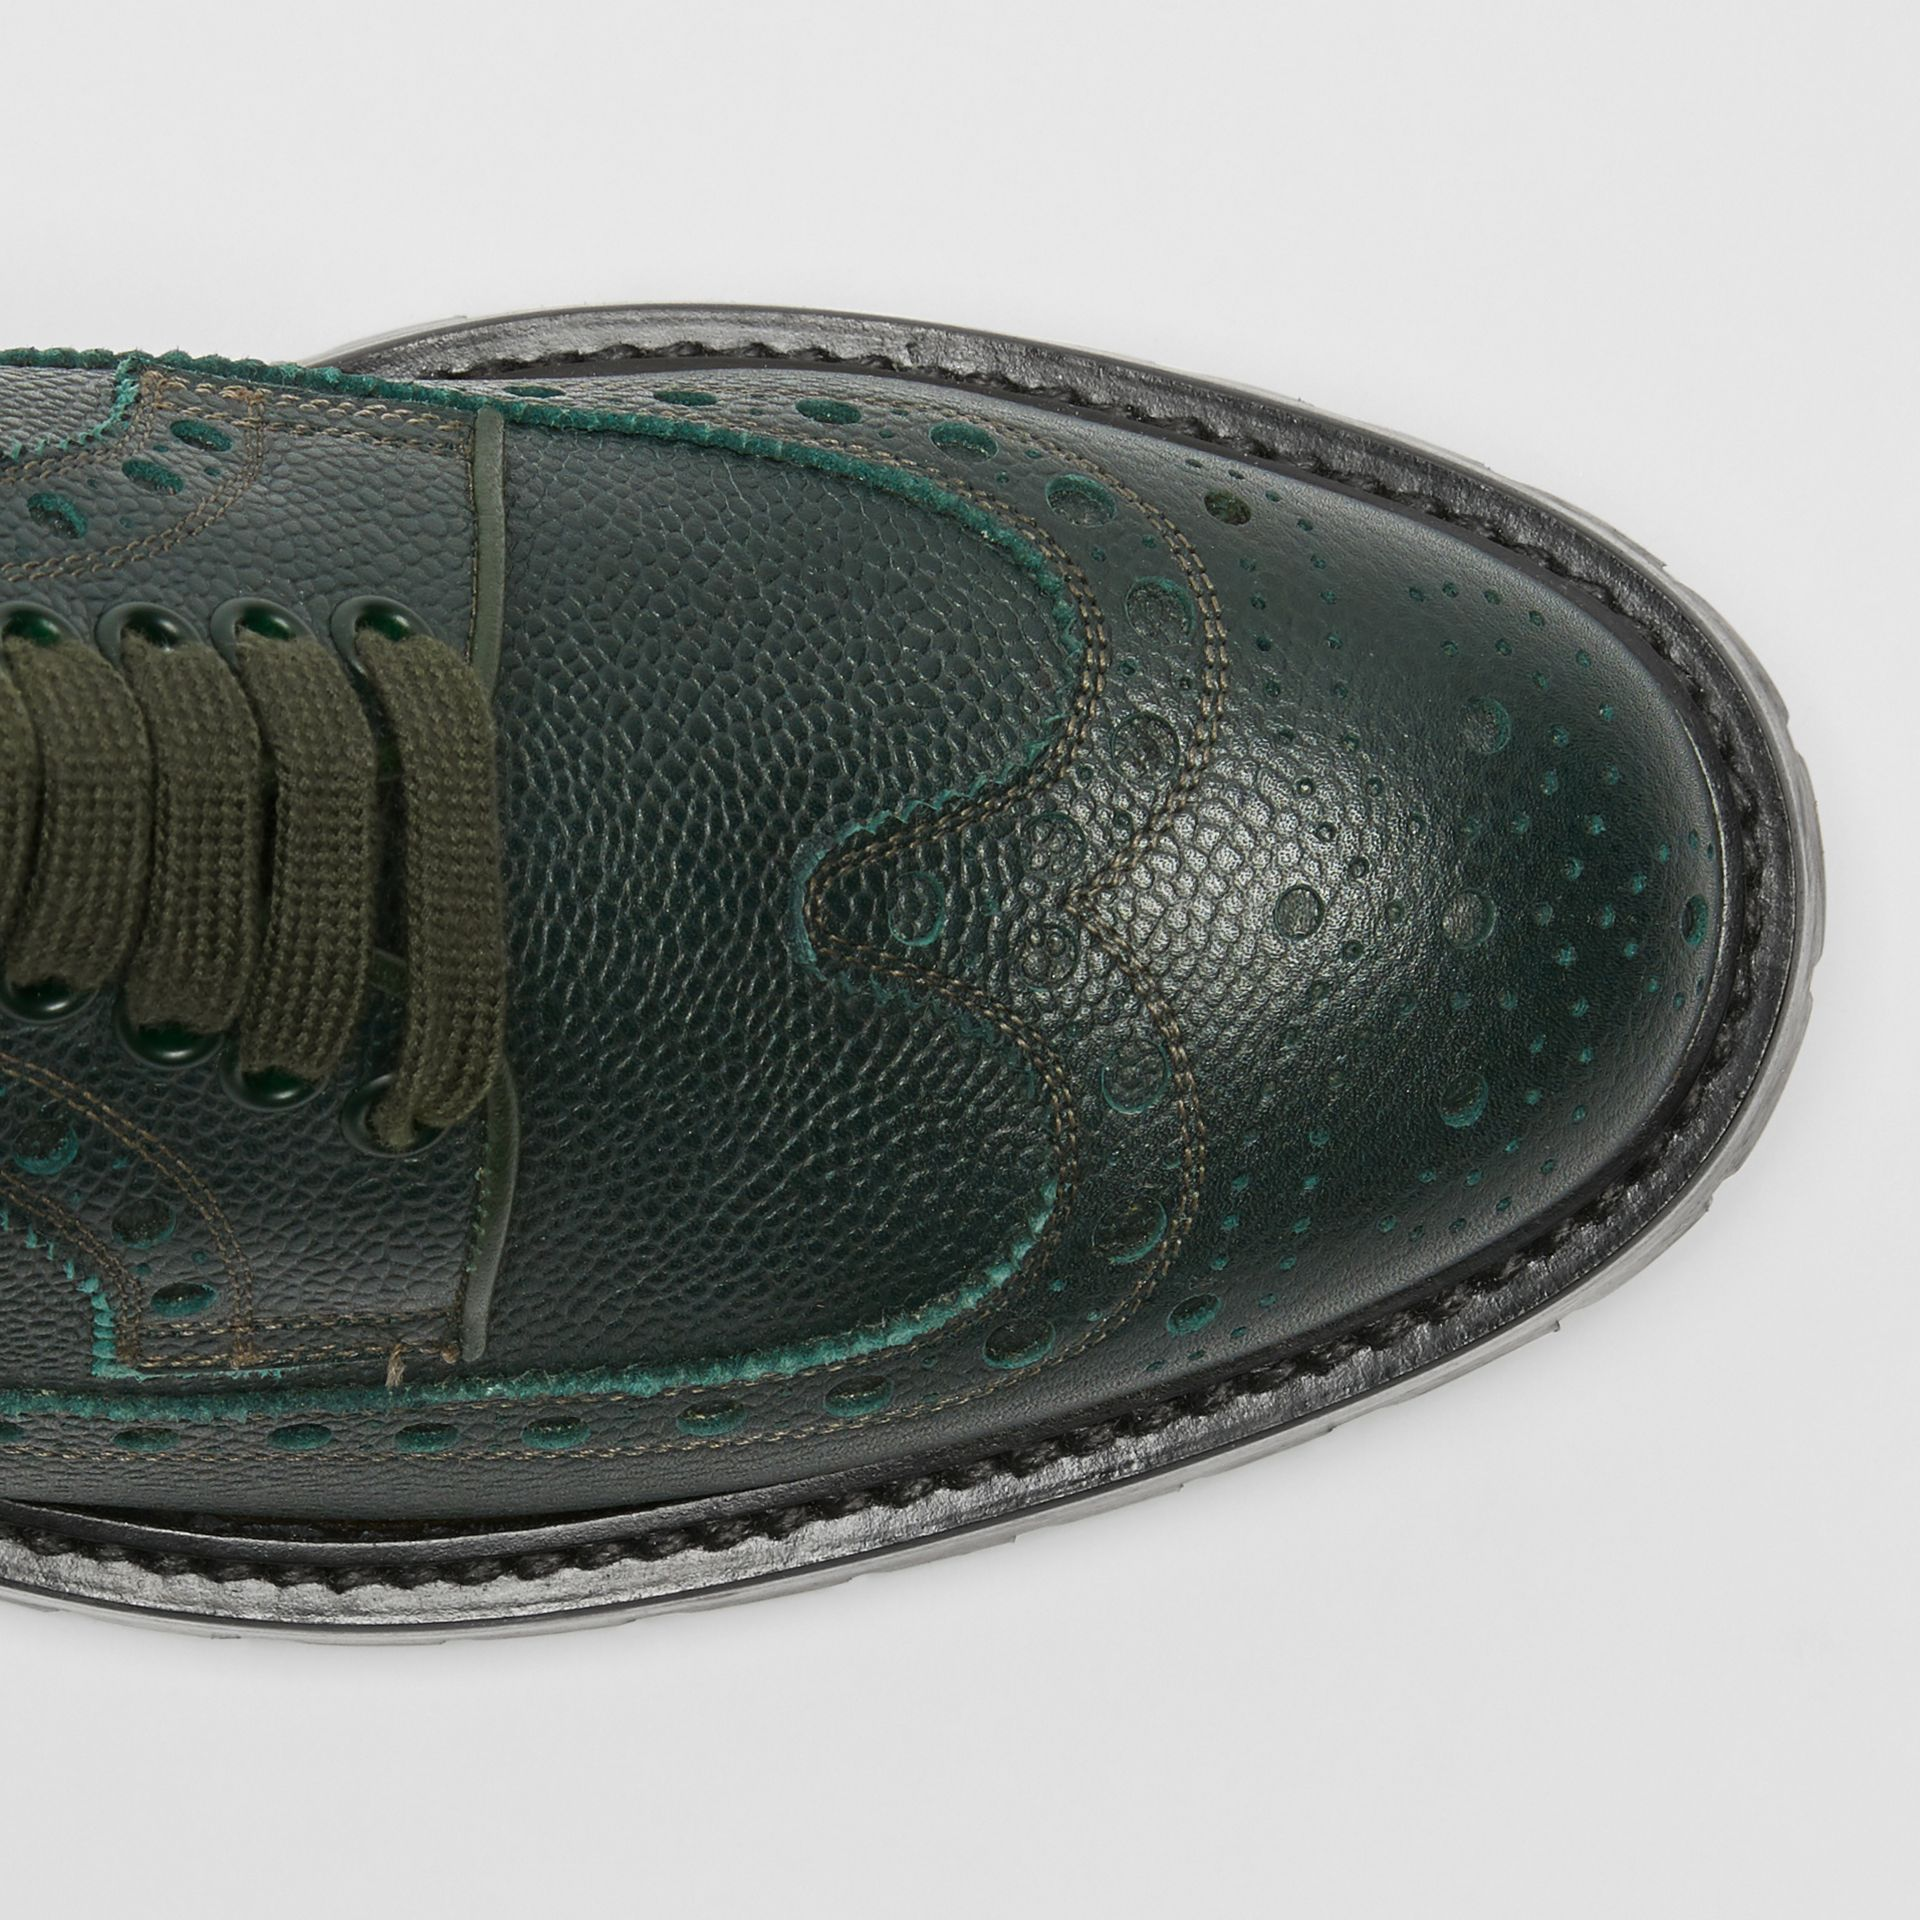 Brogue Detail Grainy Leather Derby Shoes in Deep Viridian Green - Men | Burberry - gallery image 1